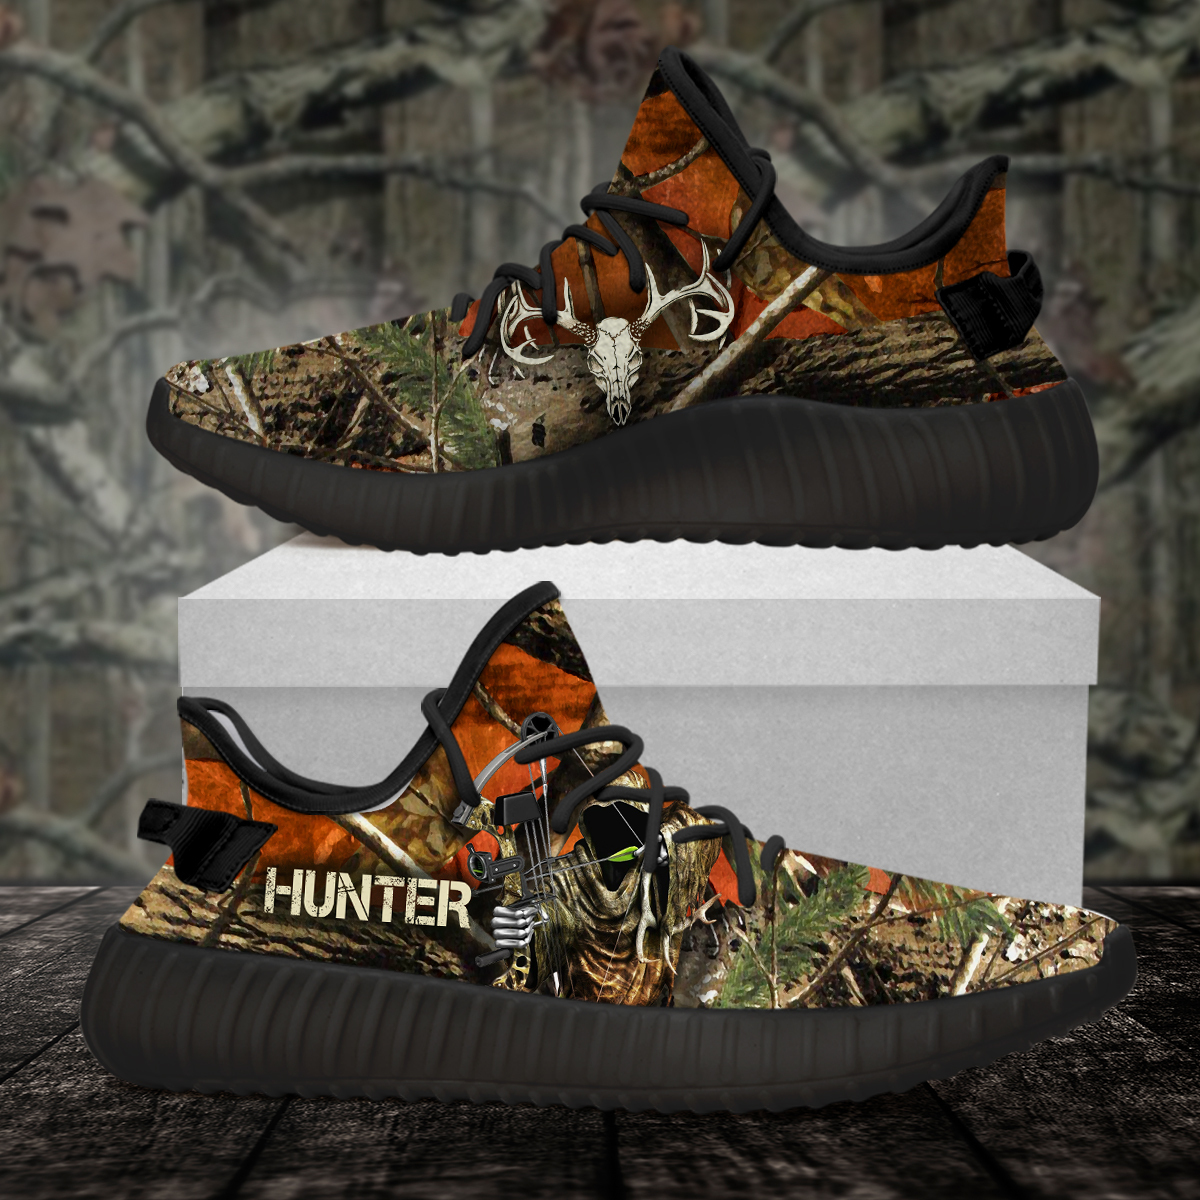 Deer hunting pattern yeezy shoes 1